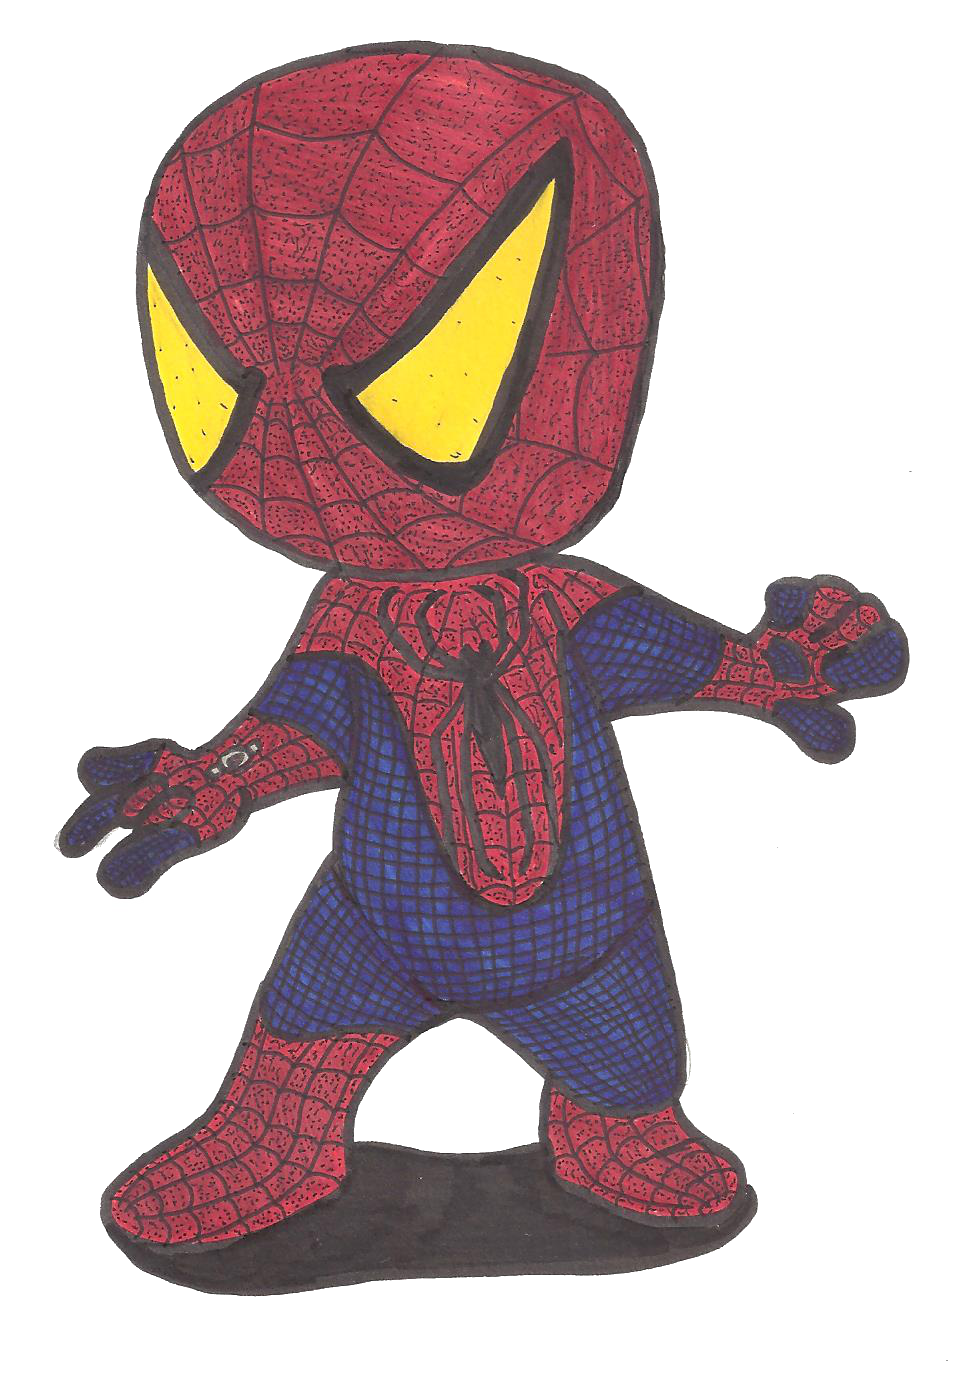 Uncle Sam moreover La Era De Hielo 4 21 together with File Zombie Pinkie Pie From My Little Pony by Dragoart additionally King Clip Art Pictures as well The Amazing Chibi Spider Man 394799017. on manny drawing